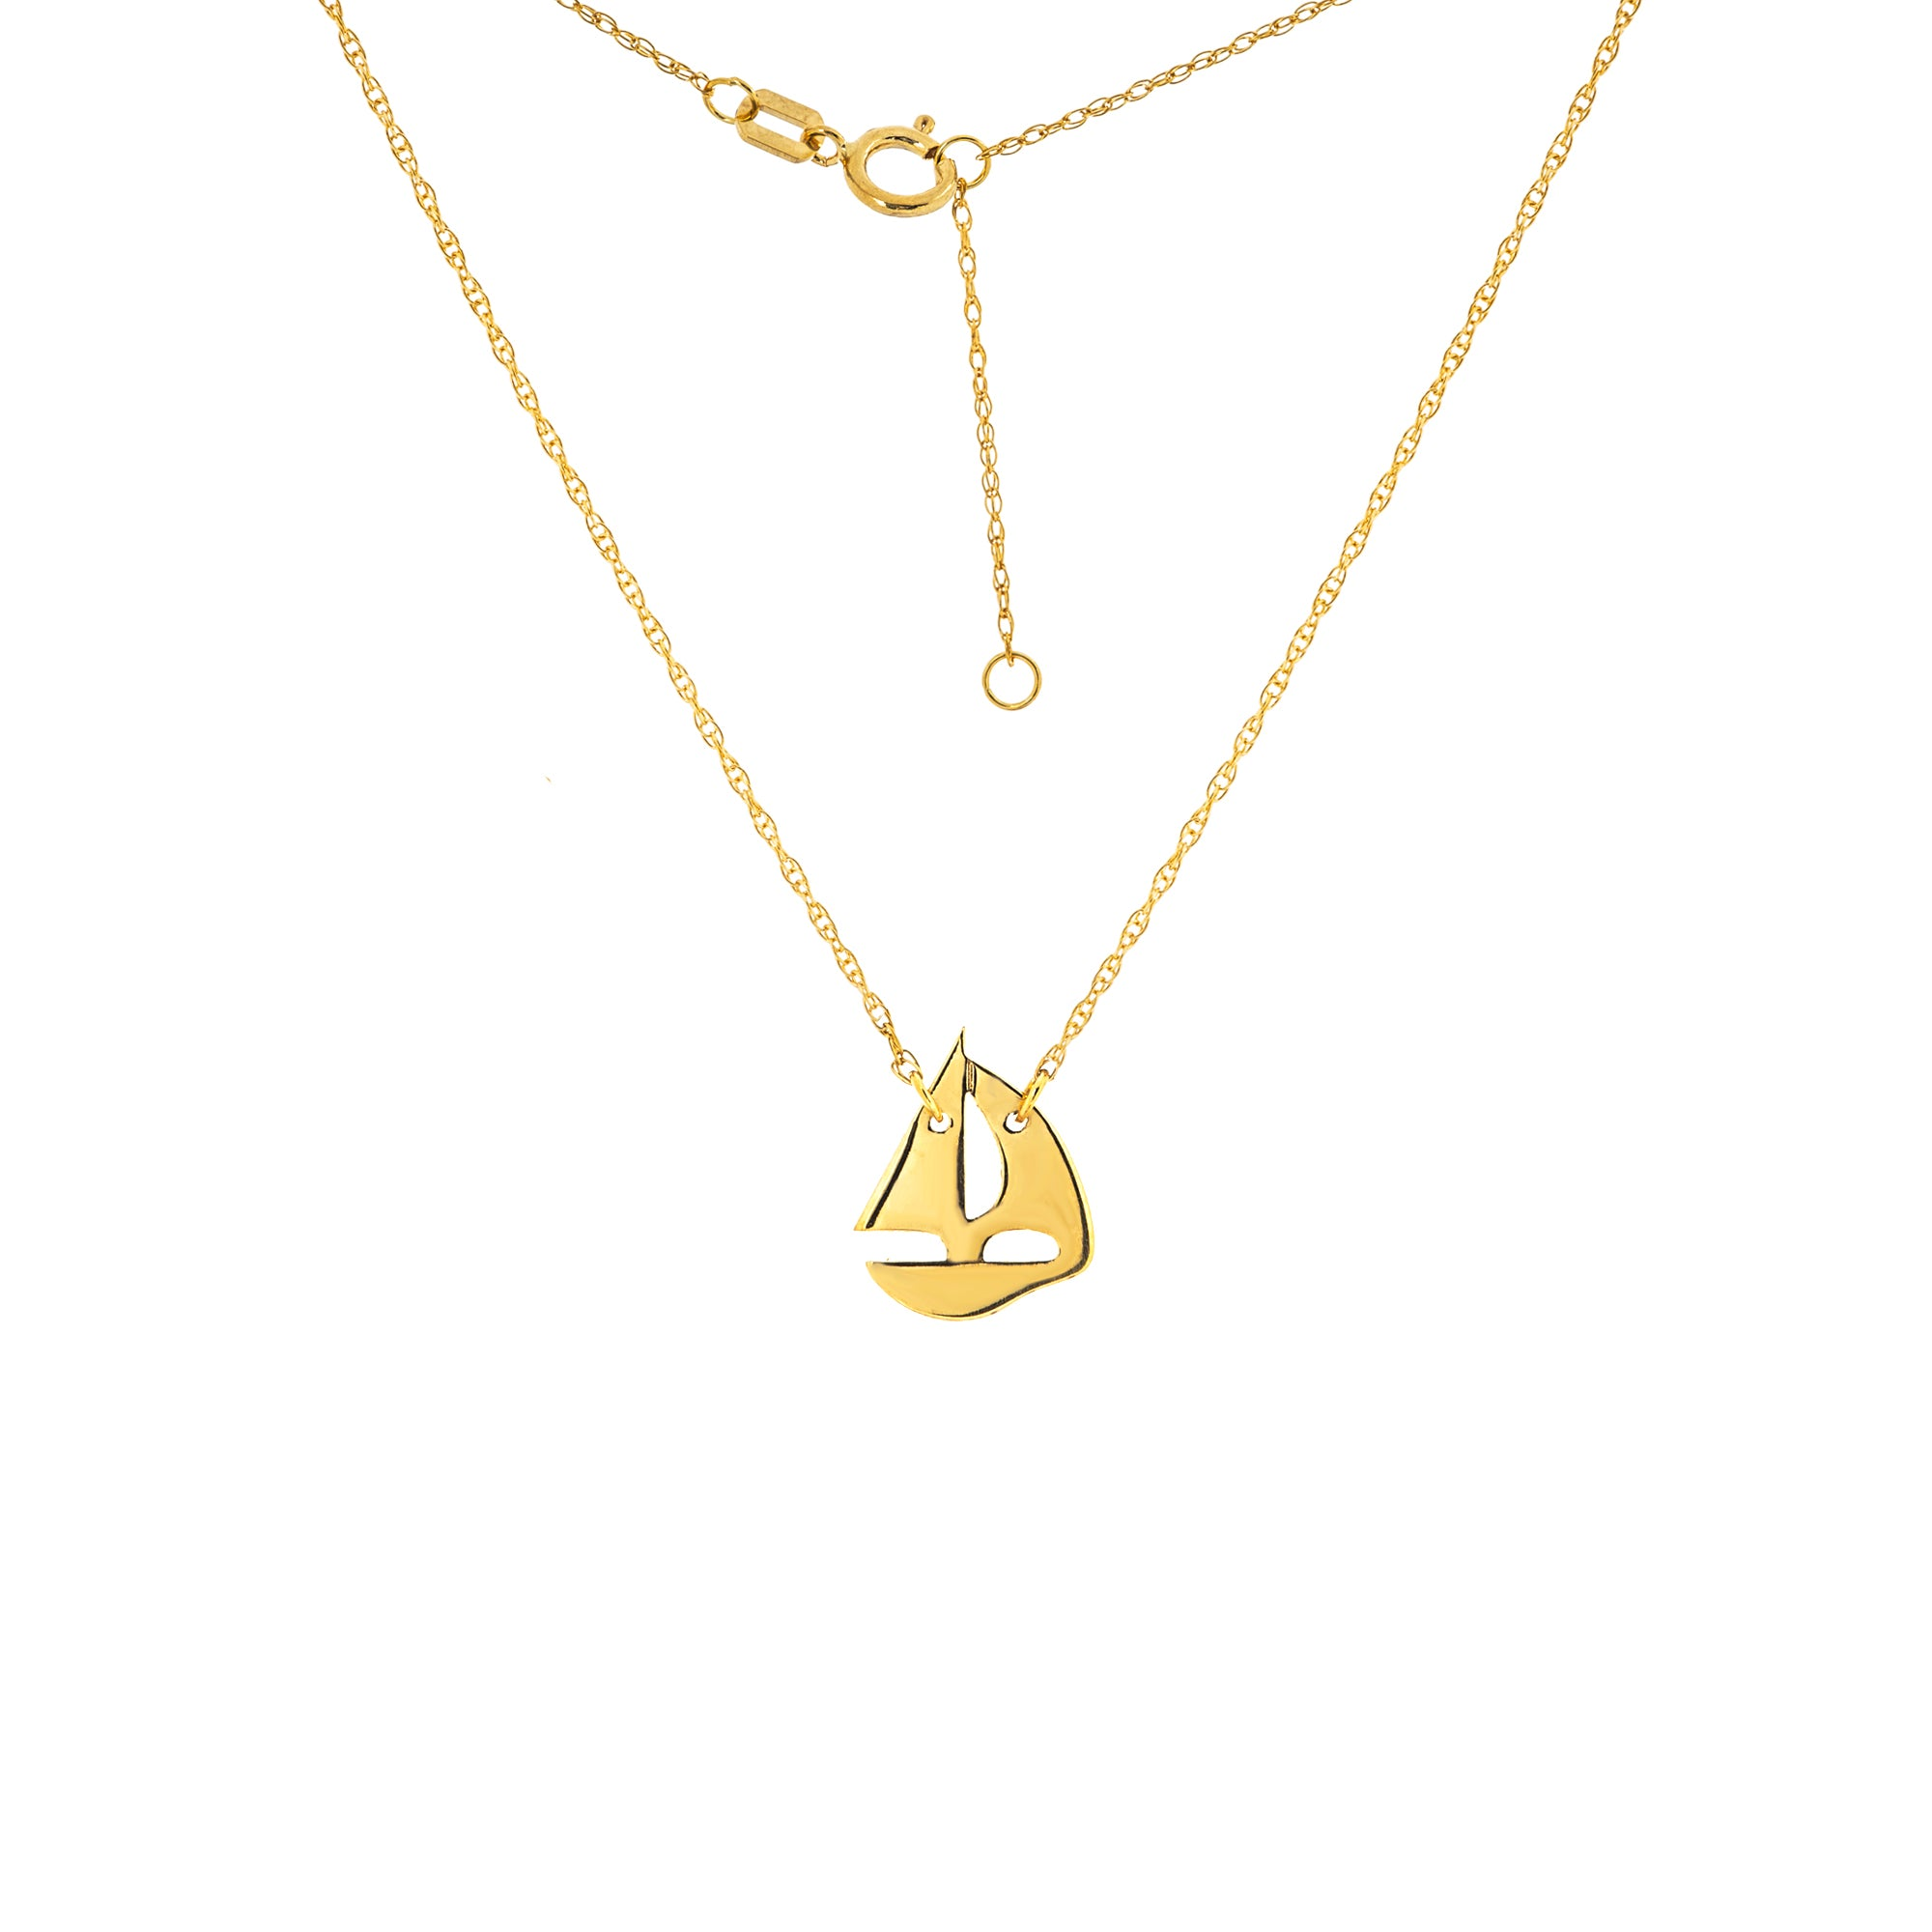 14K Yellow Gold Mini Sailing Boat Necklace With Adjustable Rope Chain